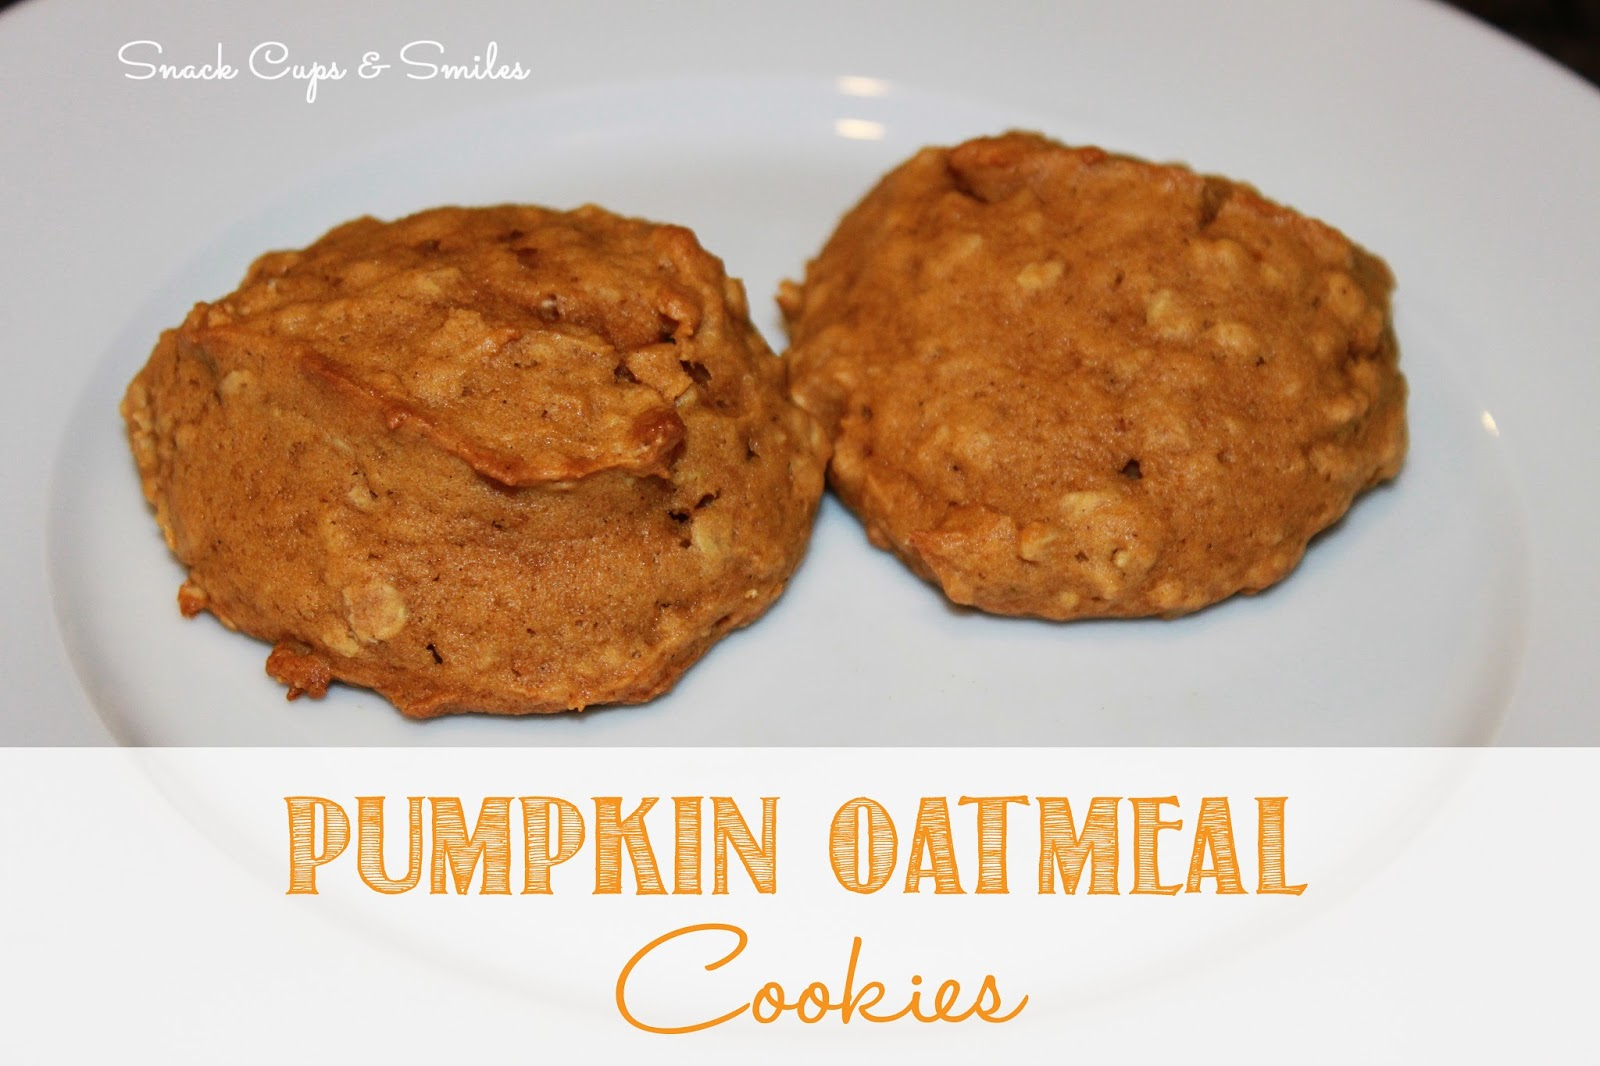 Snack Cups and Smiles: Pumpkin Oatmeal Cookies